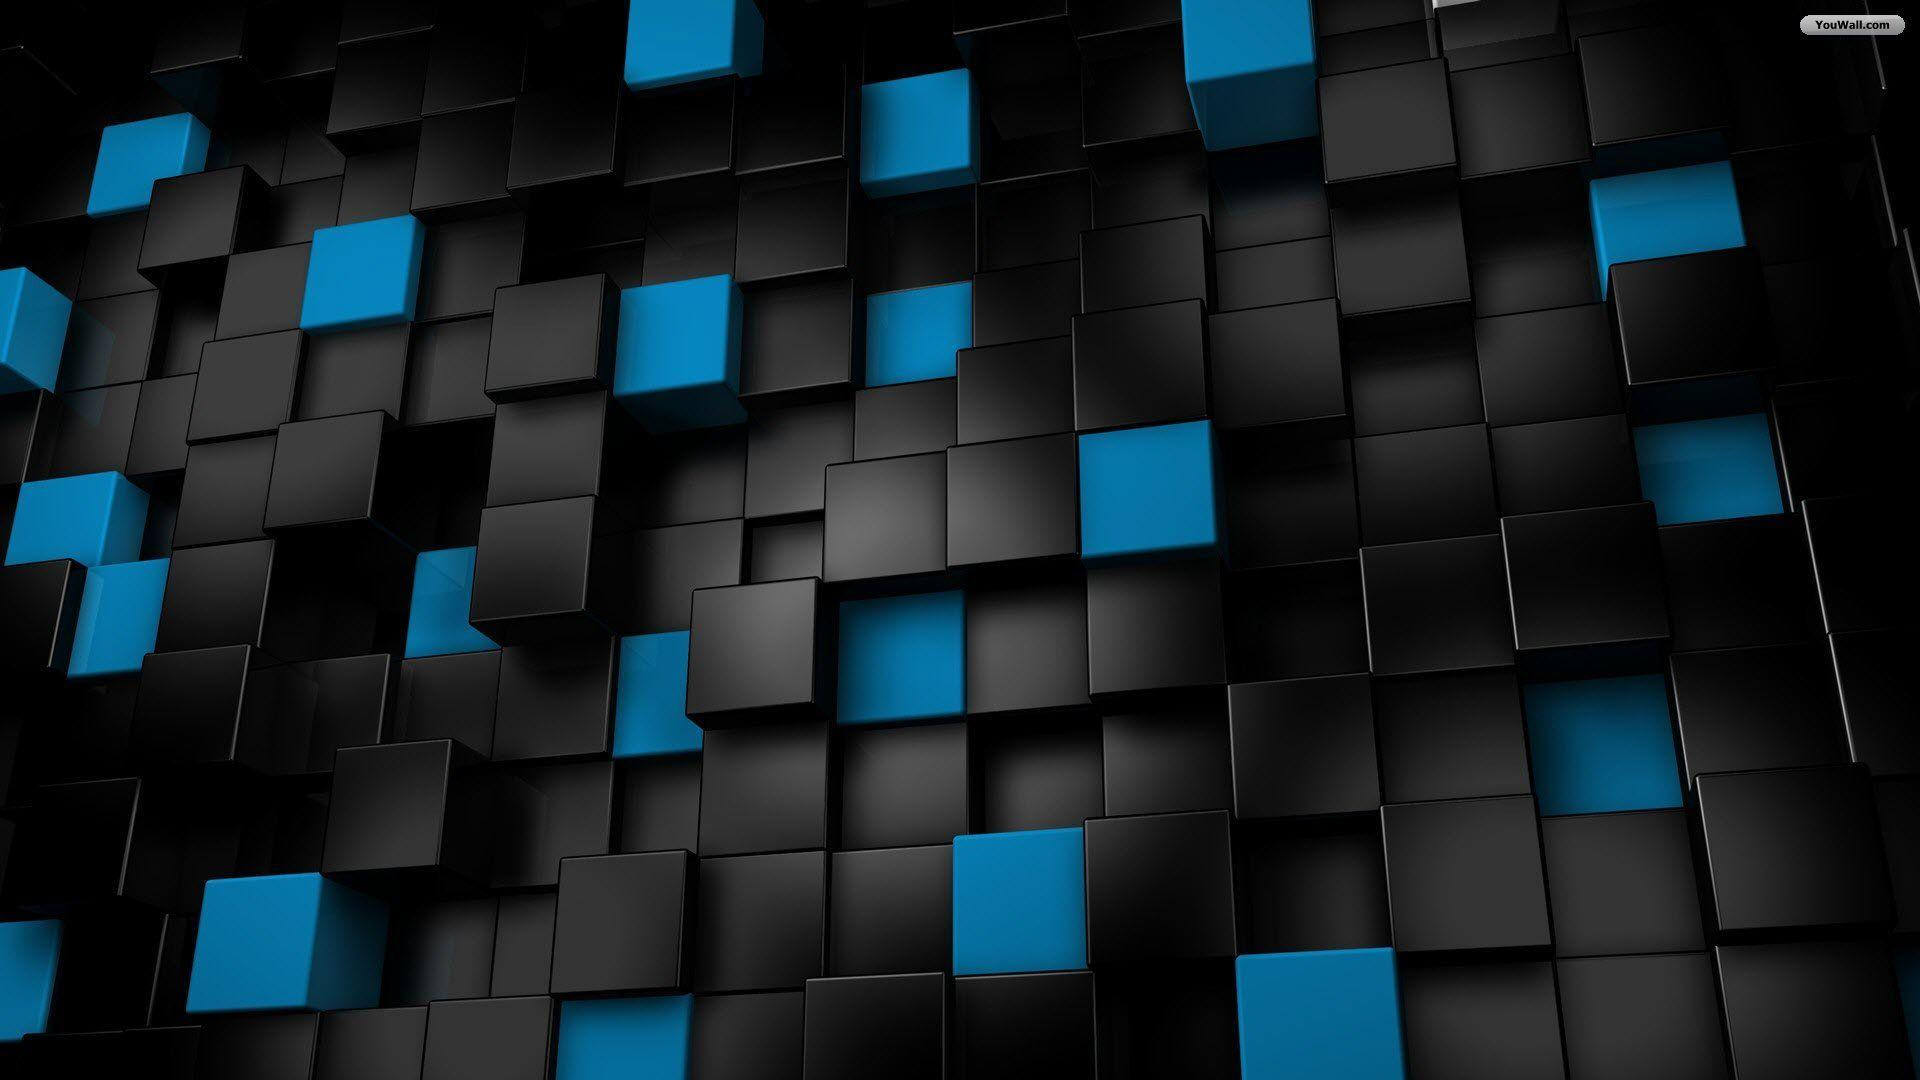 Black And Blue Wallpapers - Wallpaper Cave